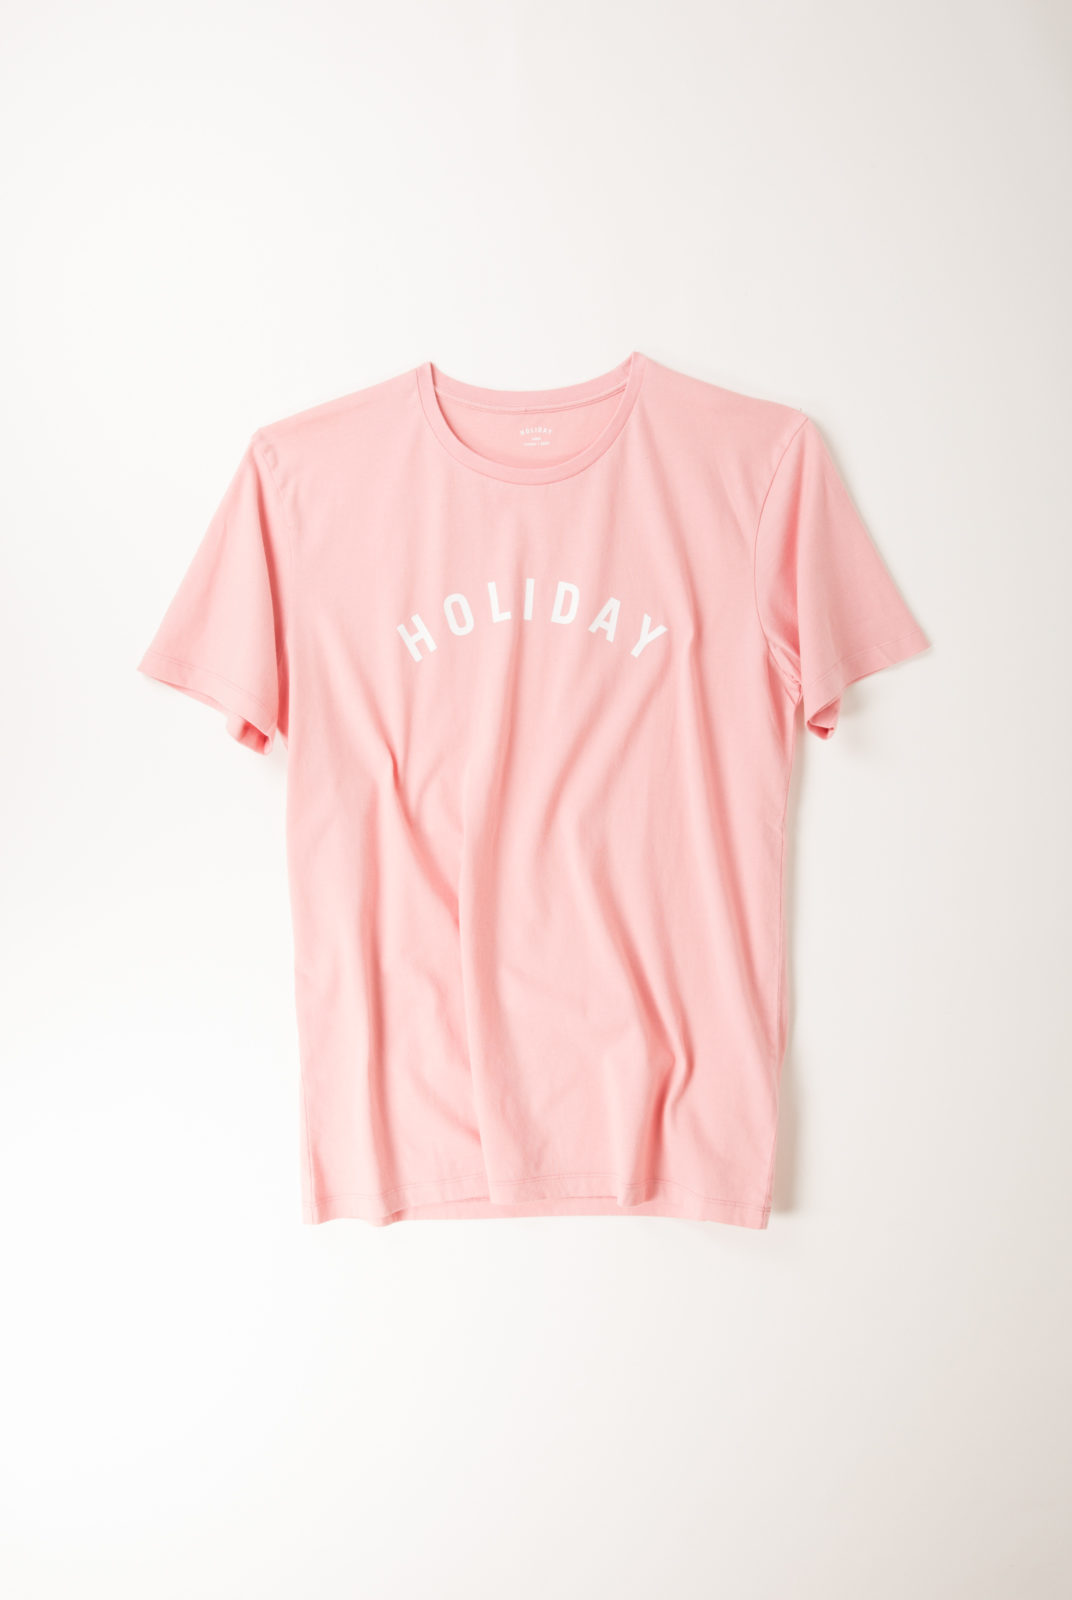 tshirt, coton, rose, encolure ronde, manches courtes, holiday